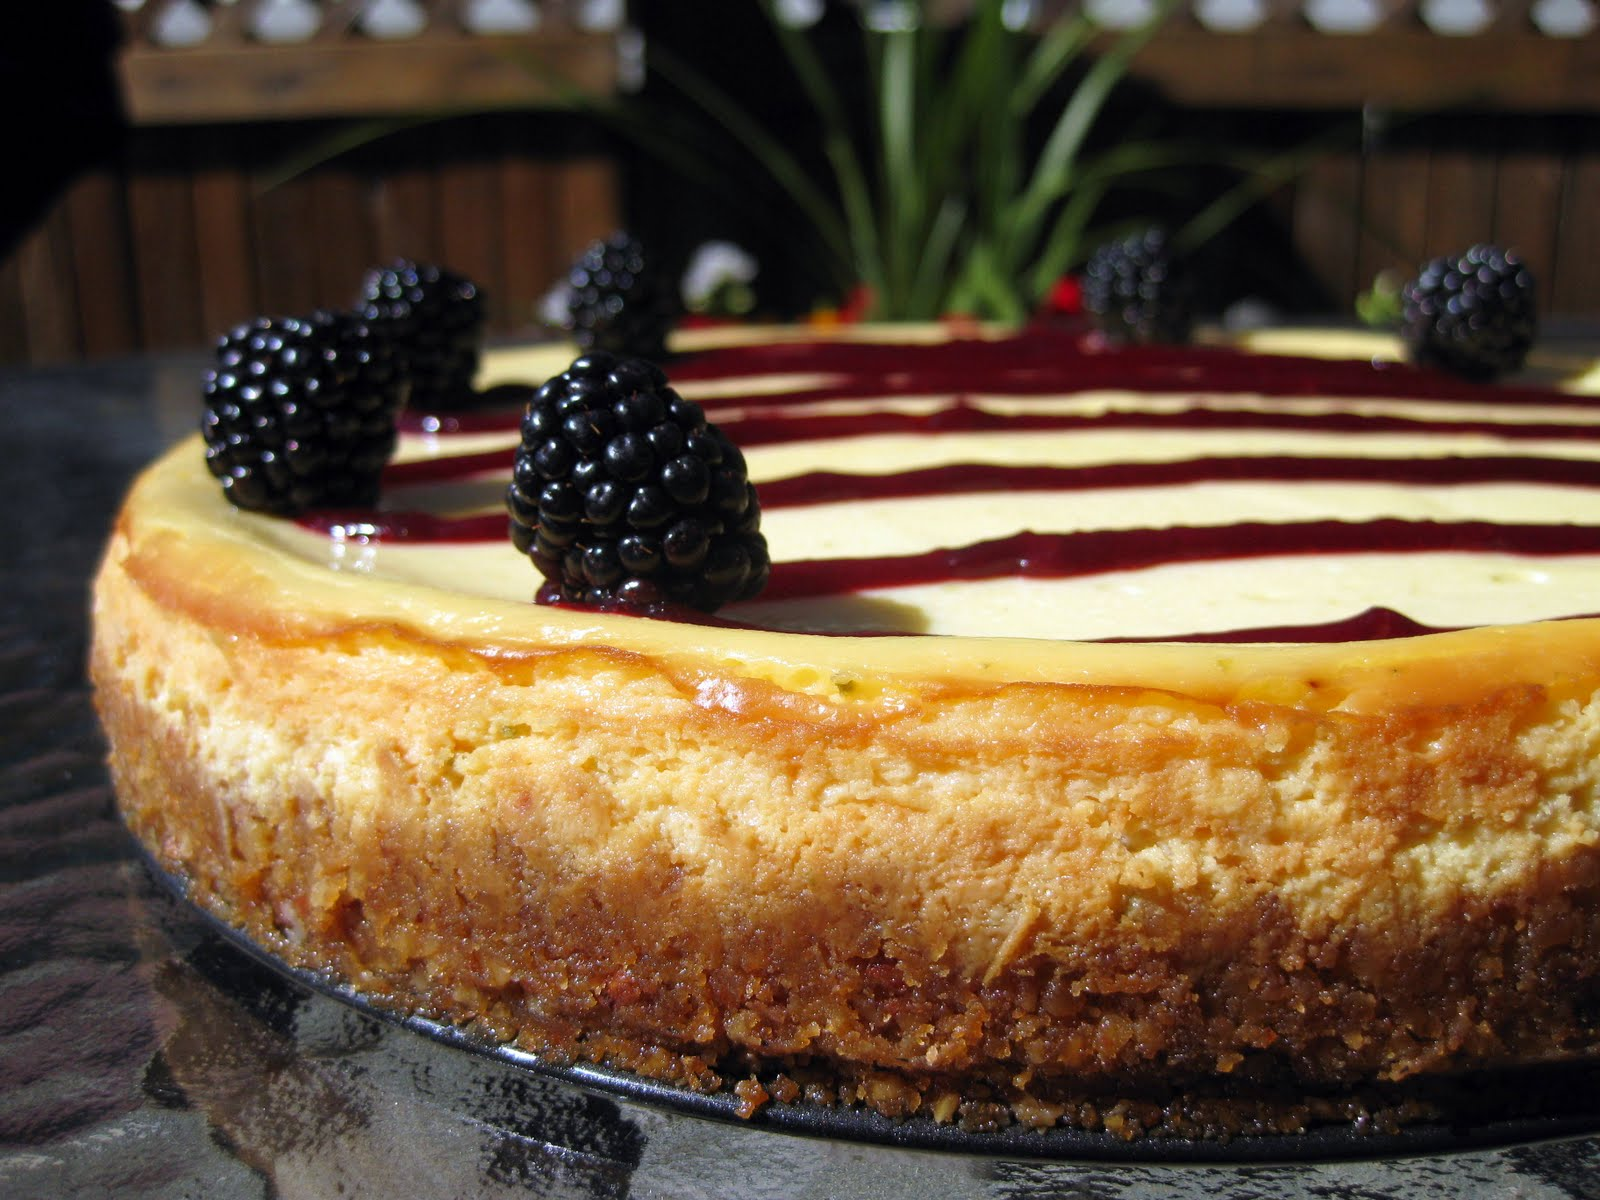 Food for Thought: Lime Cheesecake with Blackberry Sauce